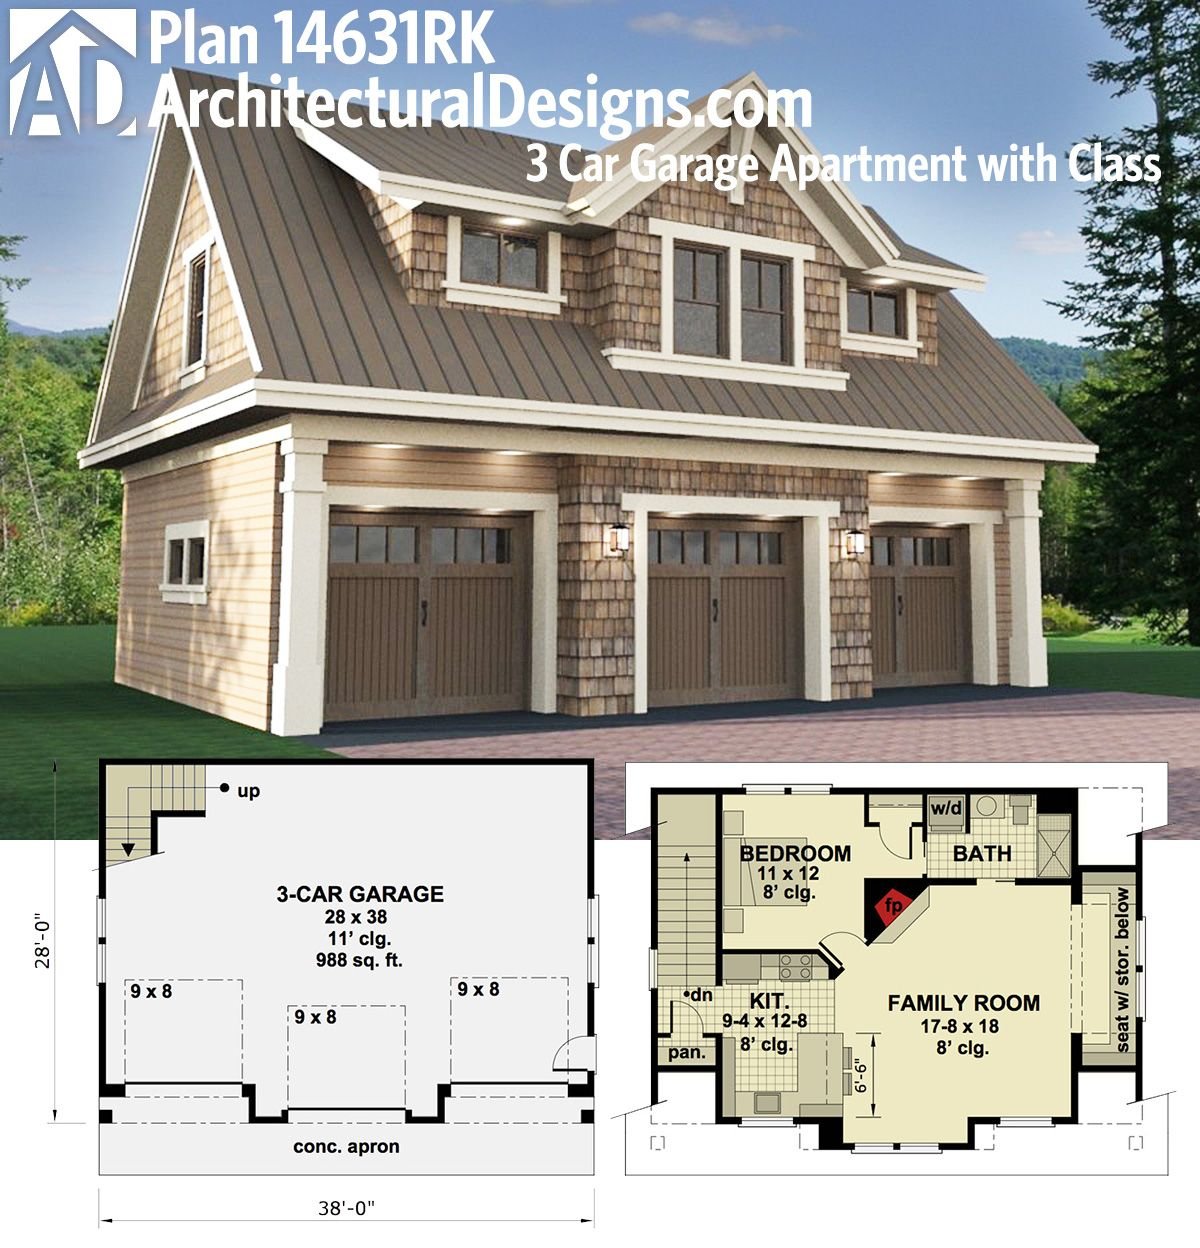 Plan 14631RK: 3 Car Garage Apartment with Class | Your ...